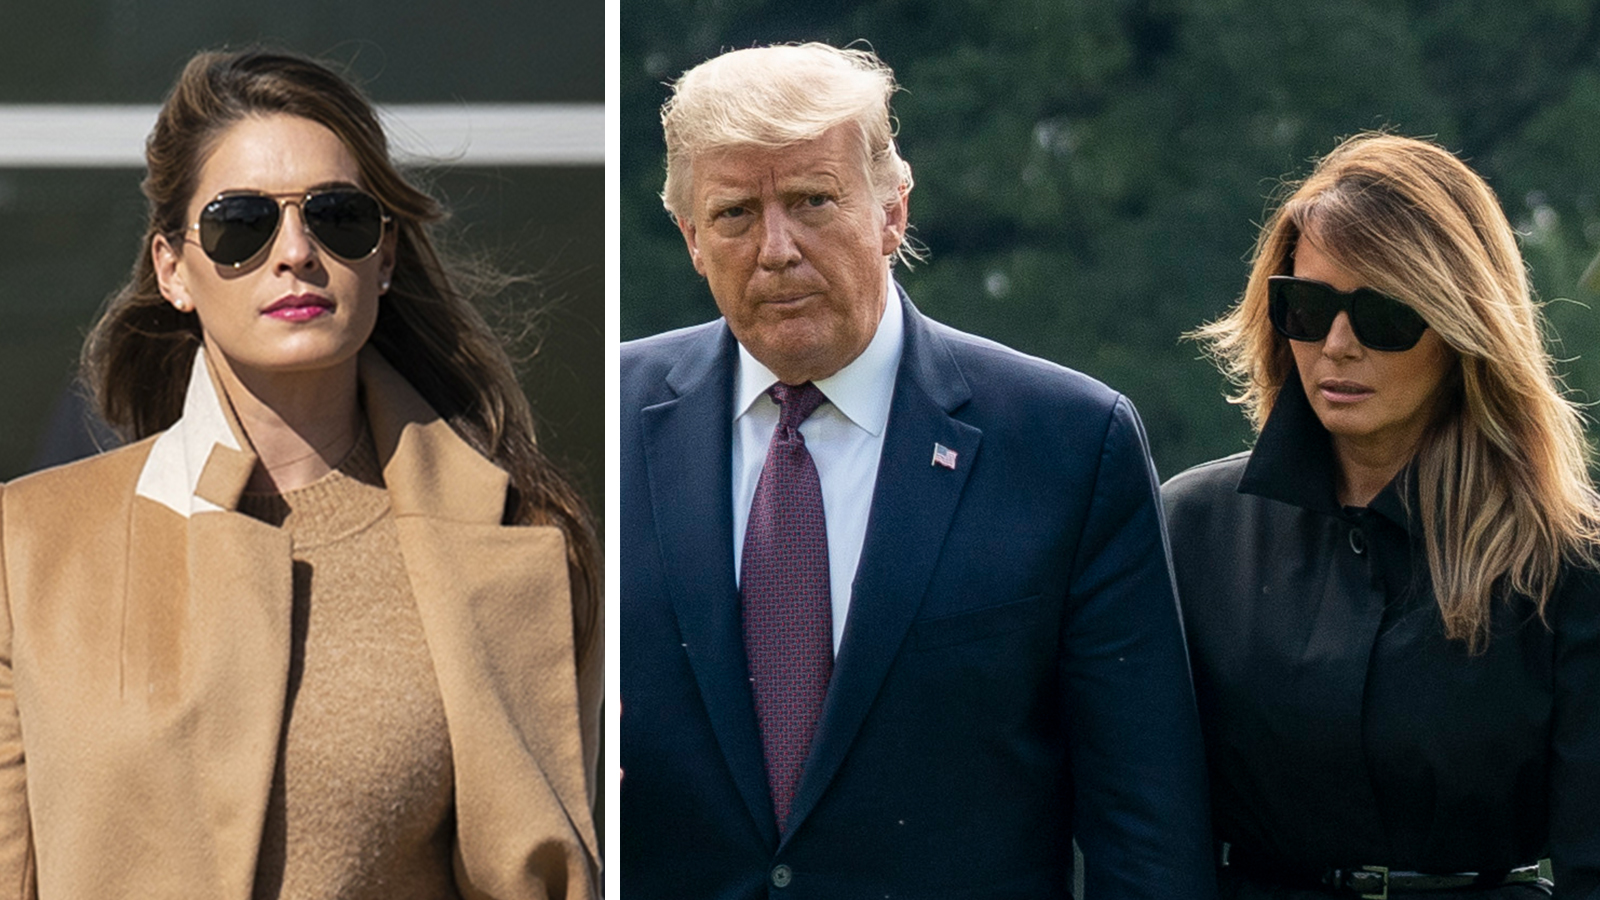 Hope Hicks, US President Donald Trump and First Lady Melania Trump.